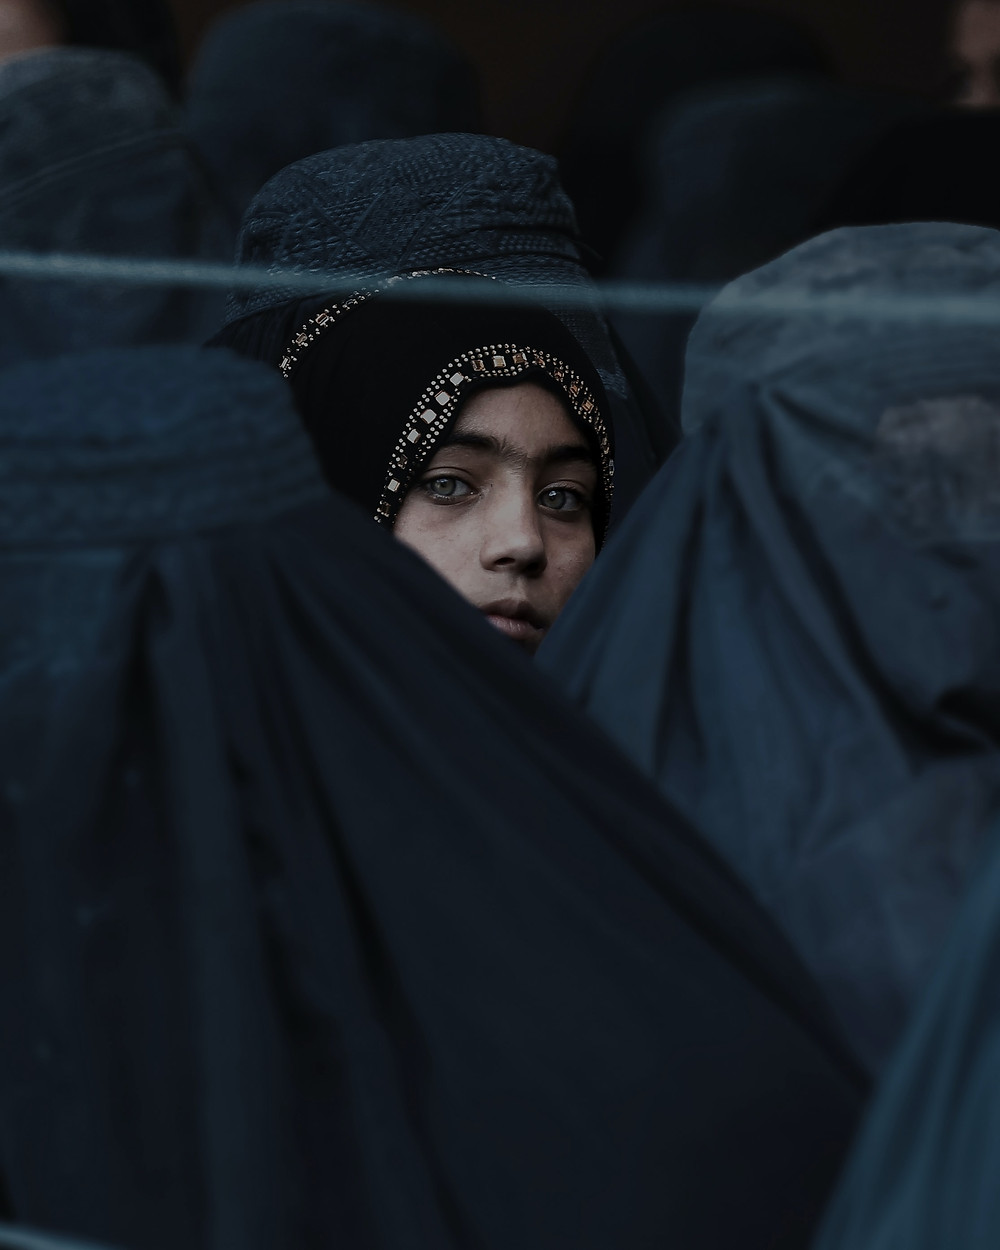 A Girl Looks on Among Afghan Women Lining Up To Receive Relief Assistance, During The Holy Month of Ramadan in #Jalalabad, #Afghanistan. Photo Credit  IsaaK Alexandre KaRslian on Unsplash